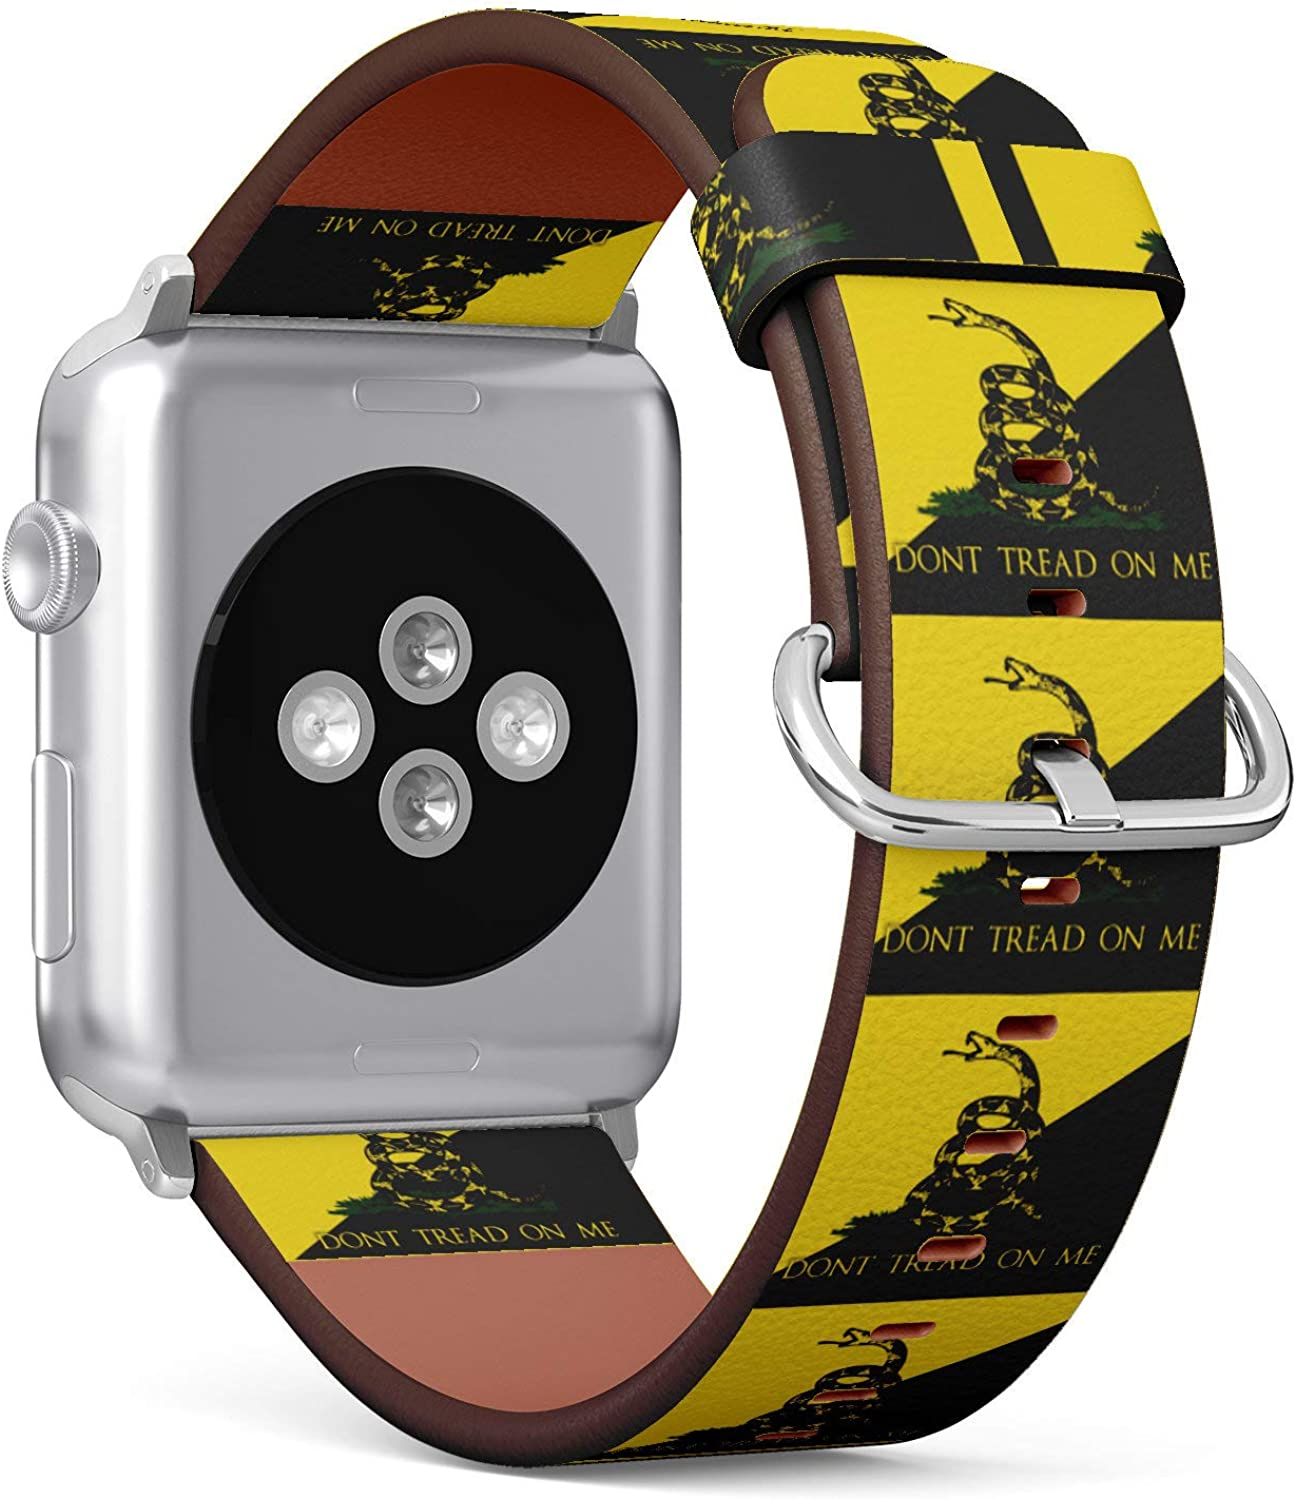 (Don't Tread On Me Flag) Patterned Leather Wristband Strap for Apple Watch Series 4/3/2/1 gen,Replacement for iWatch 38mm / 40mm Bands